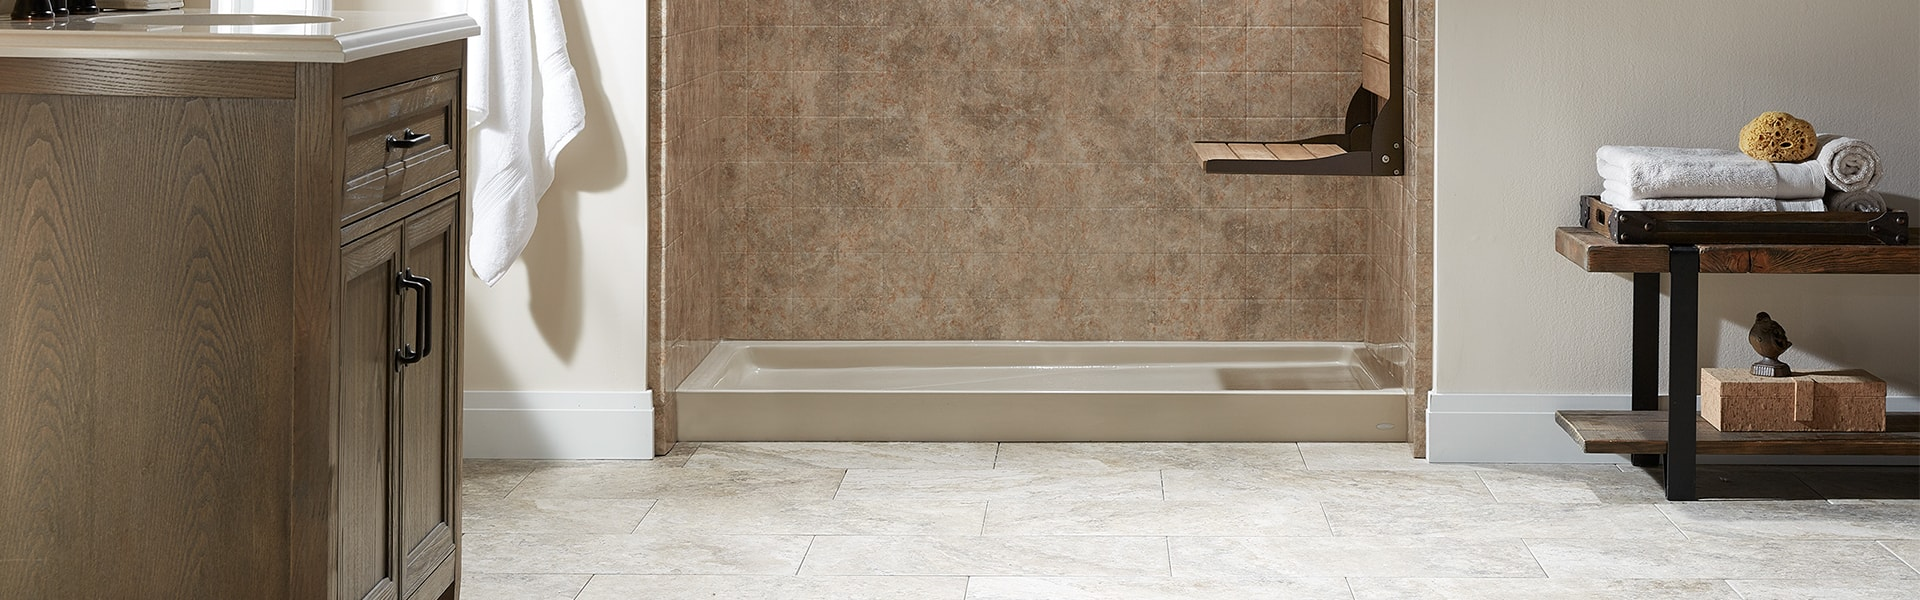 Tub To Shower Conversions Remodels Installations West